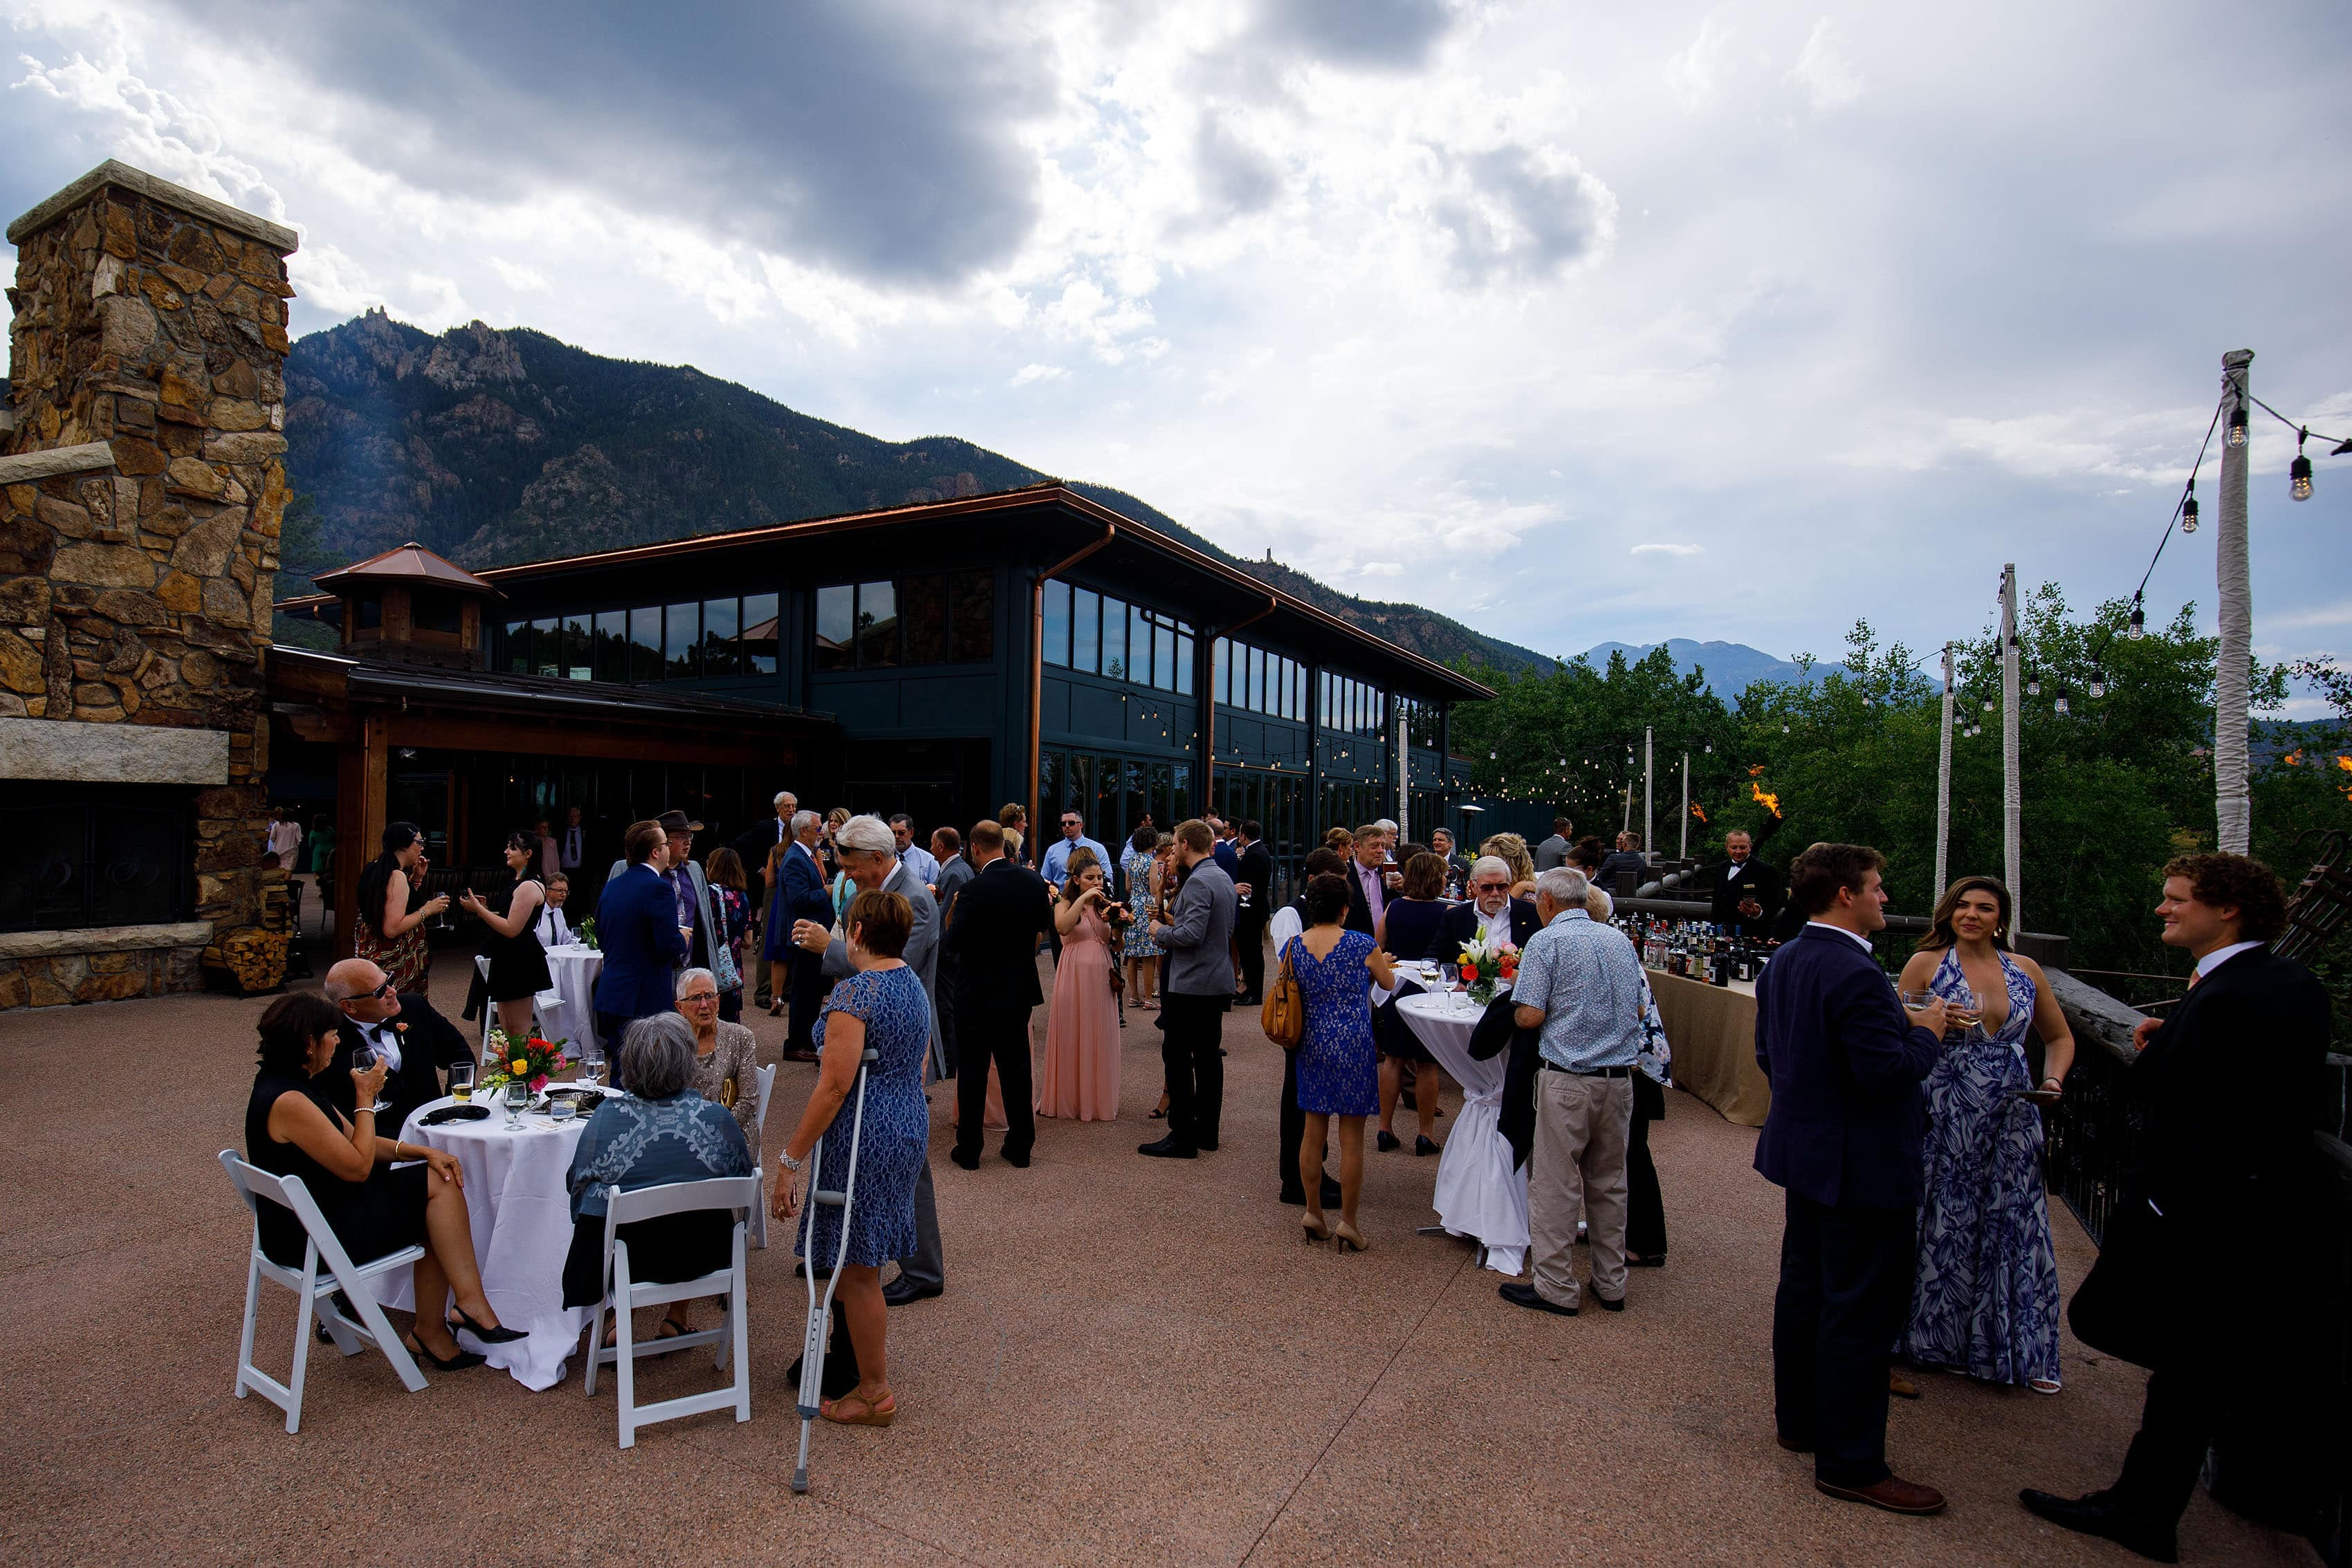 Cheyenne Lodge wedding venue at The Broadmoor